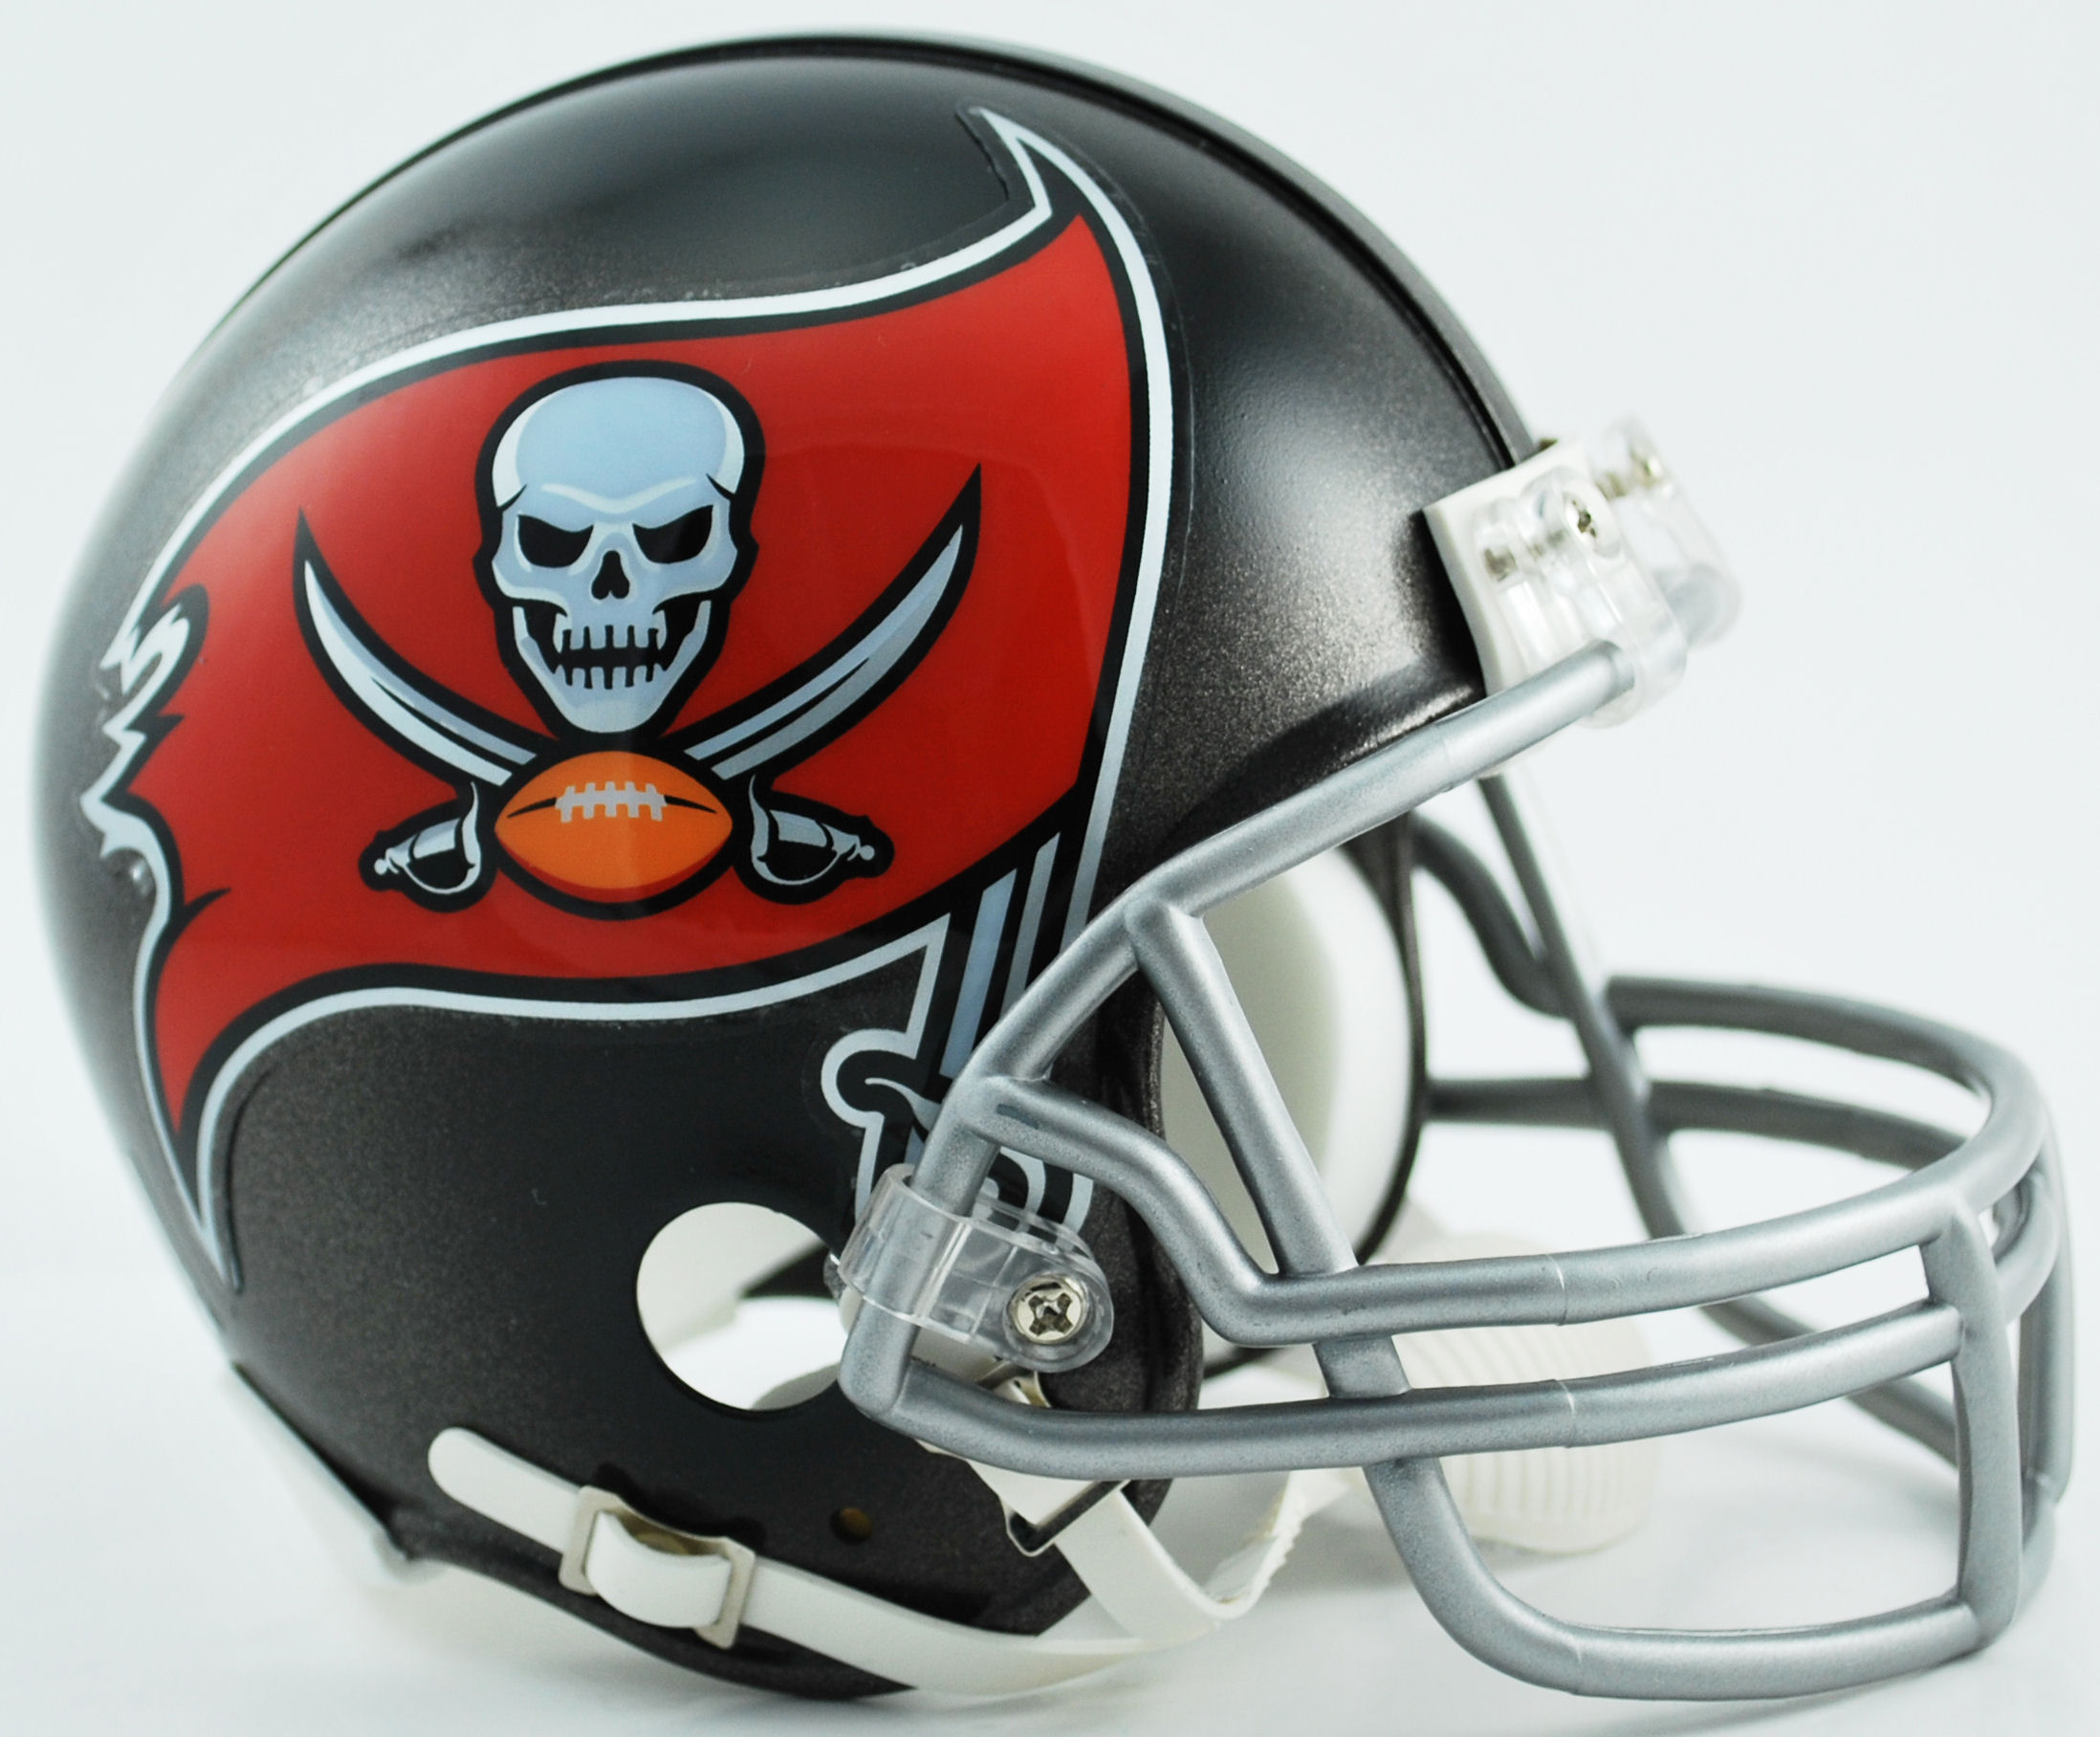 Tampa Bay Buccaneers NFL Mini Football Helmet <B>2014</B>